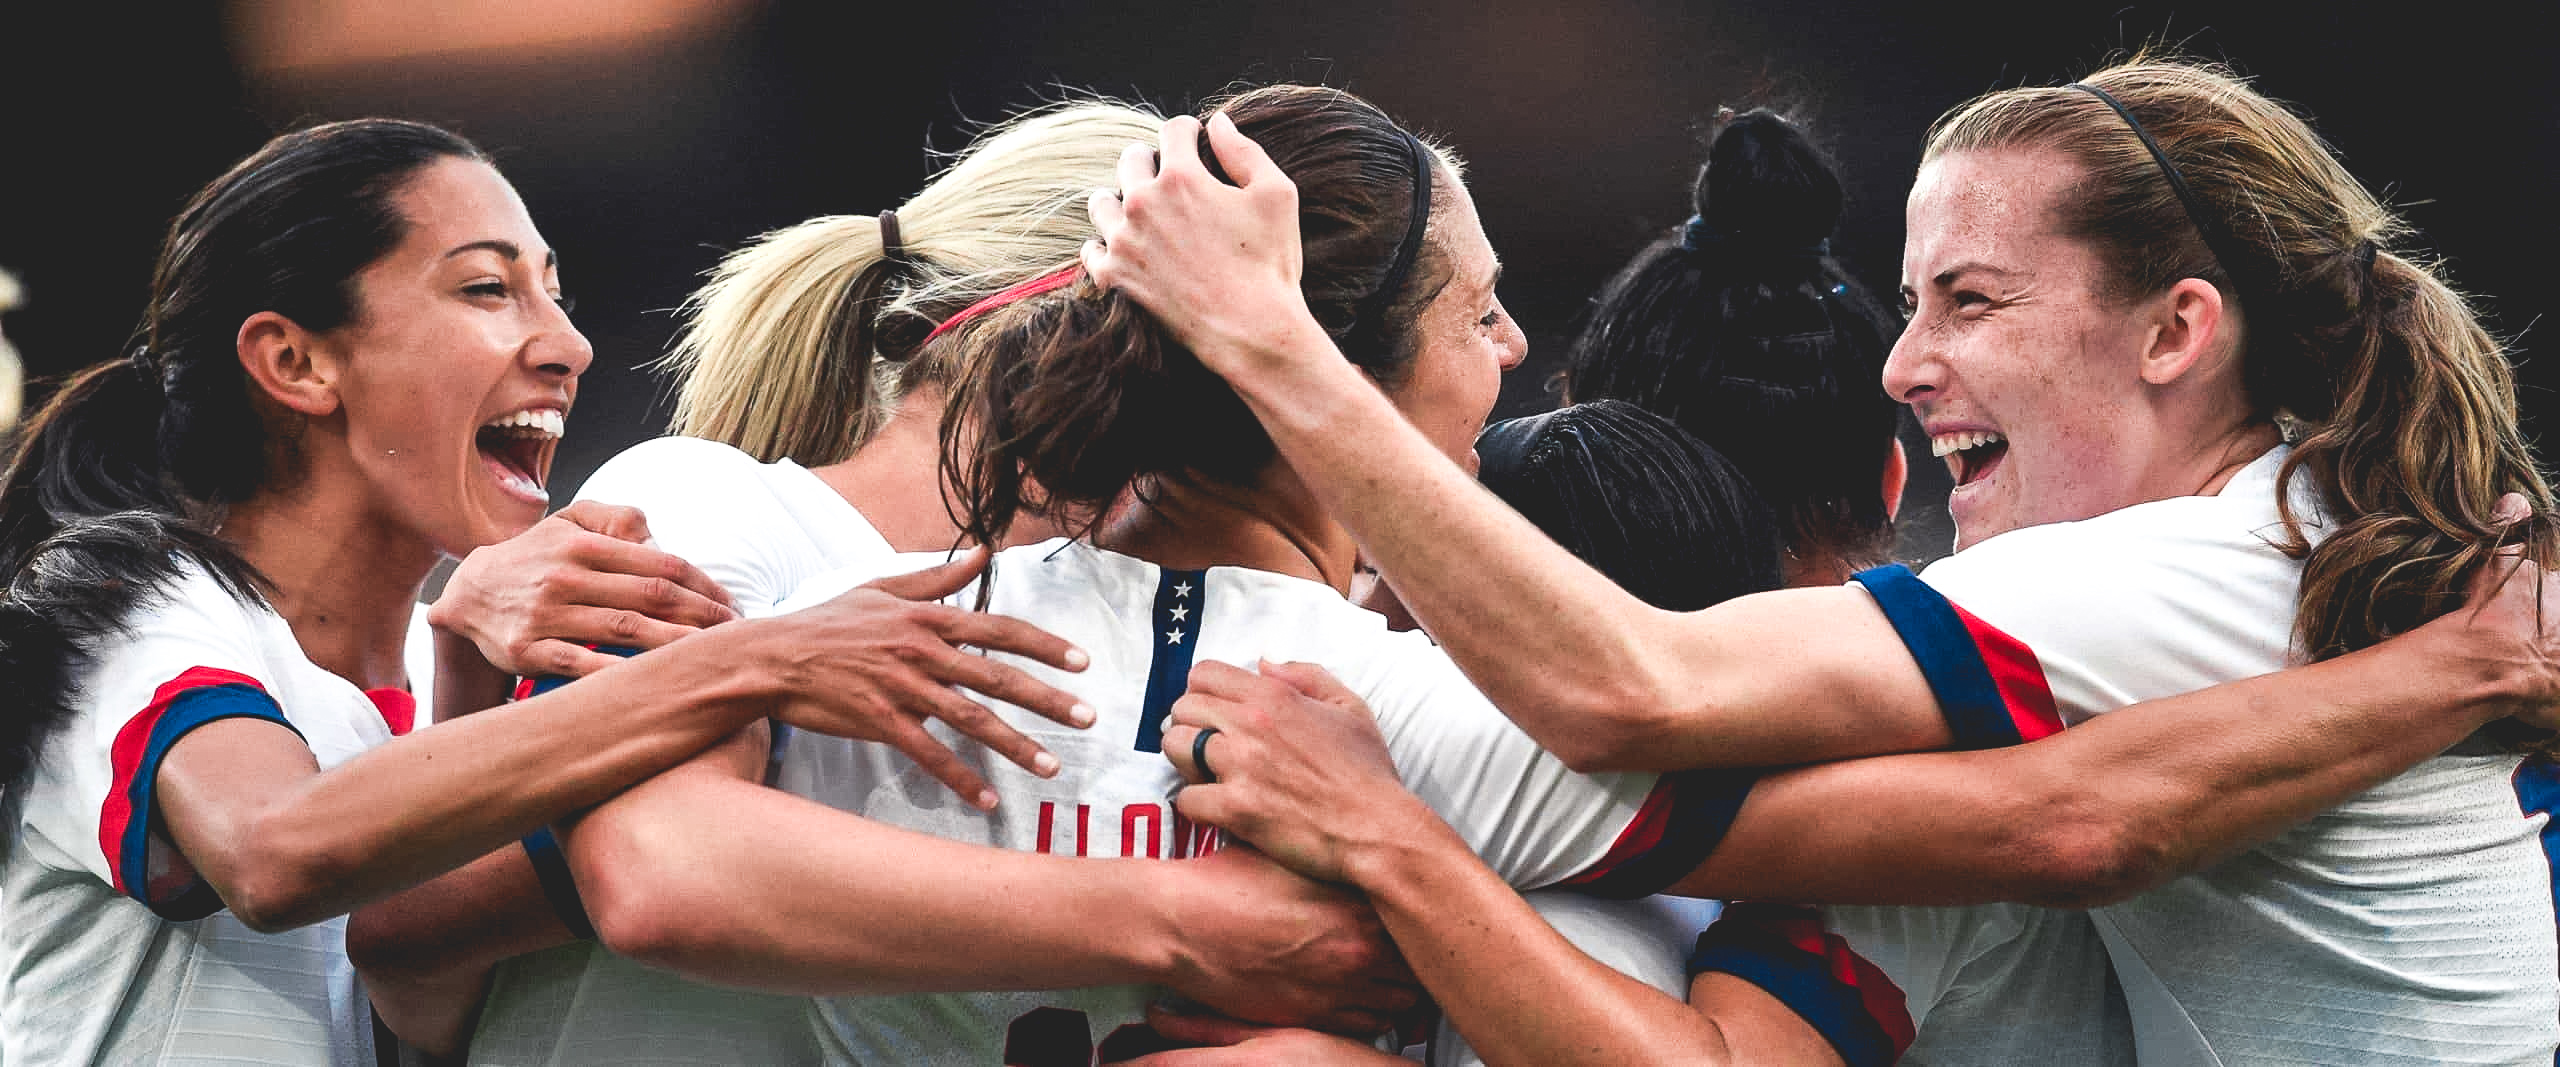 Members of the U.S. Women's National Soccer Team at the 2019 World Cup.